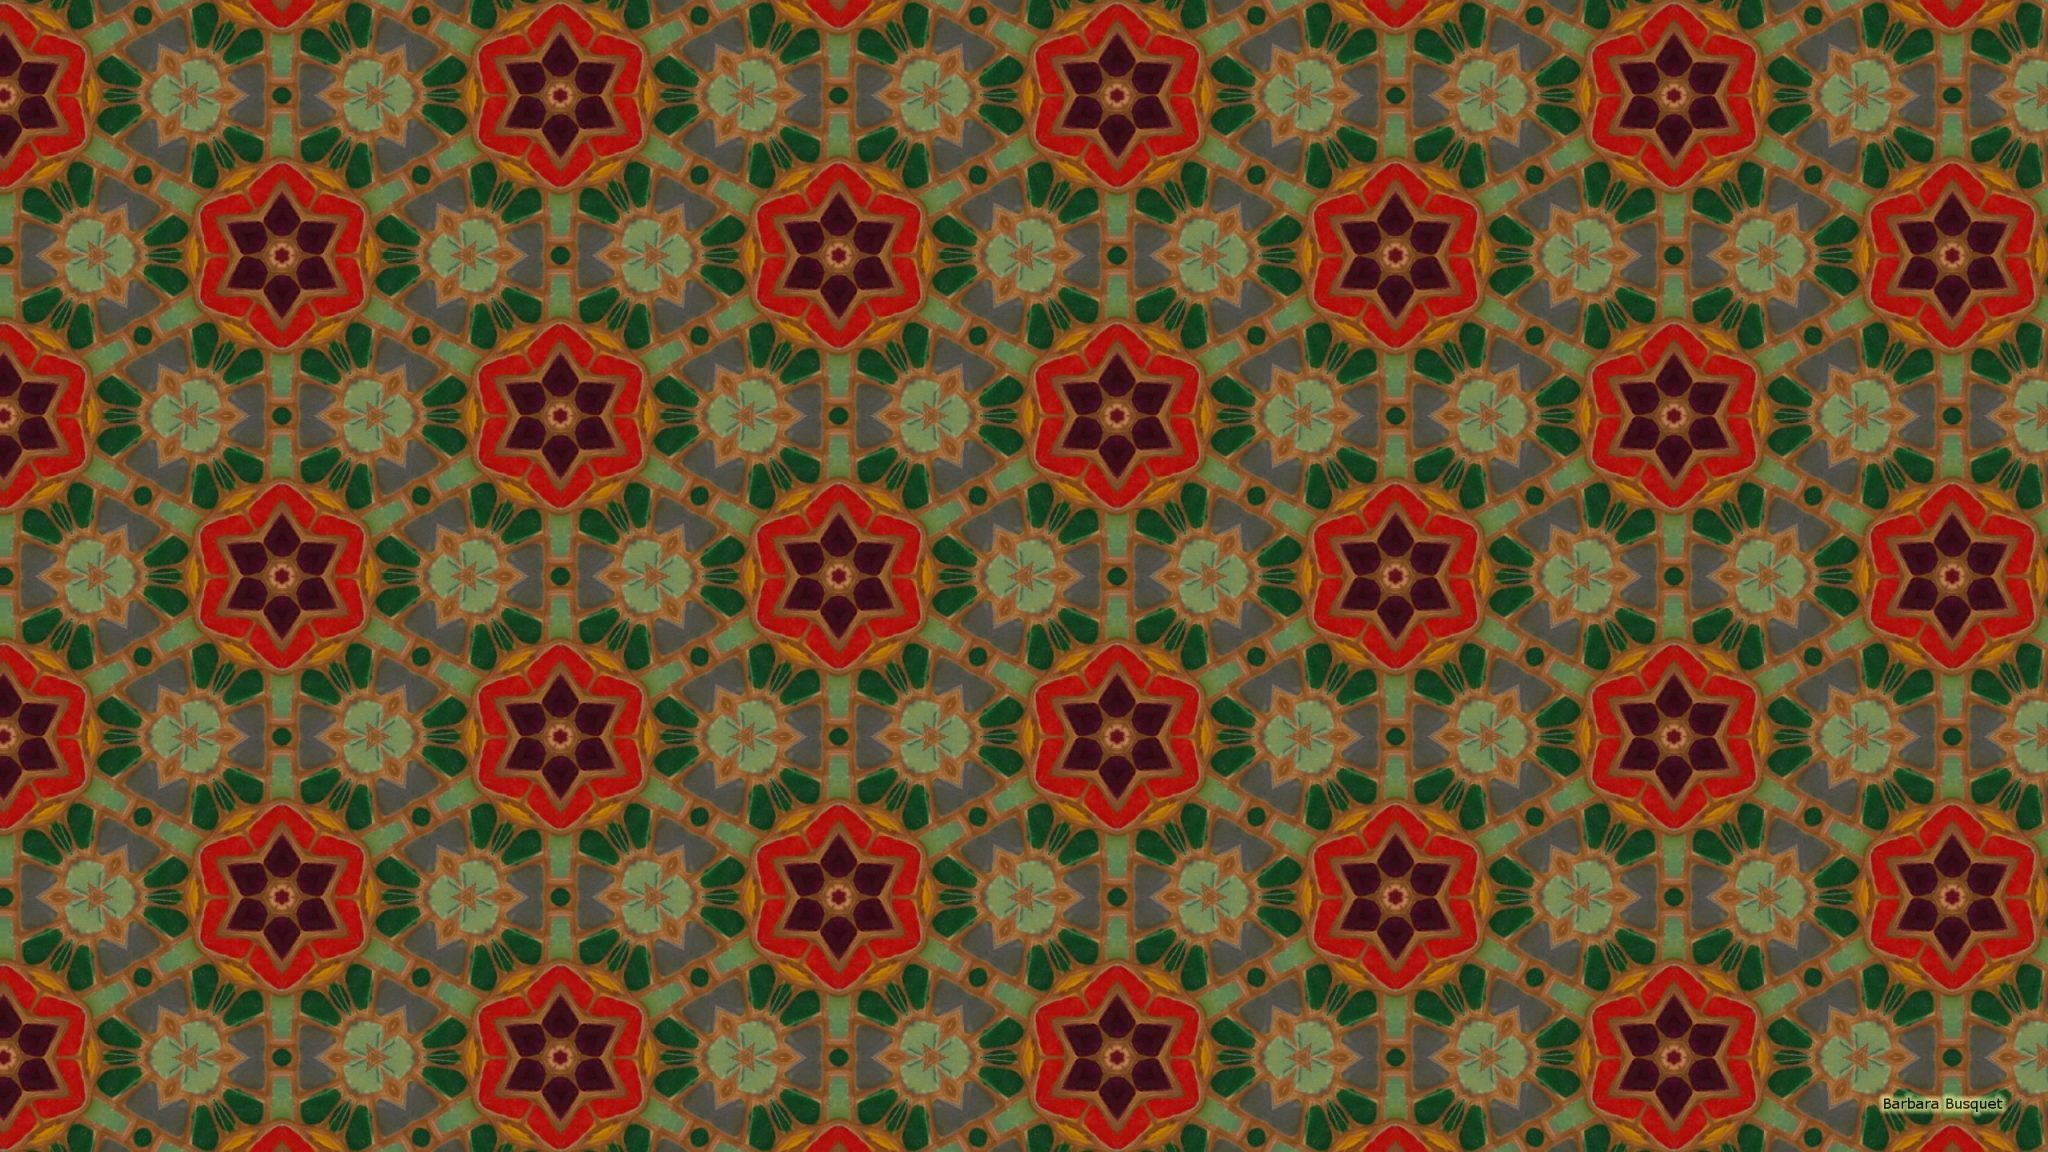 mosaic pattern wallpapers barbaras hd wallpapers